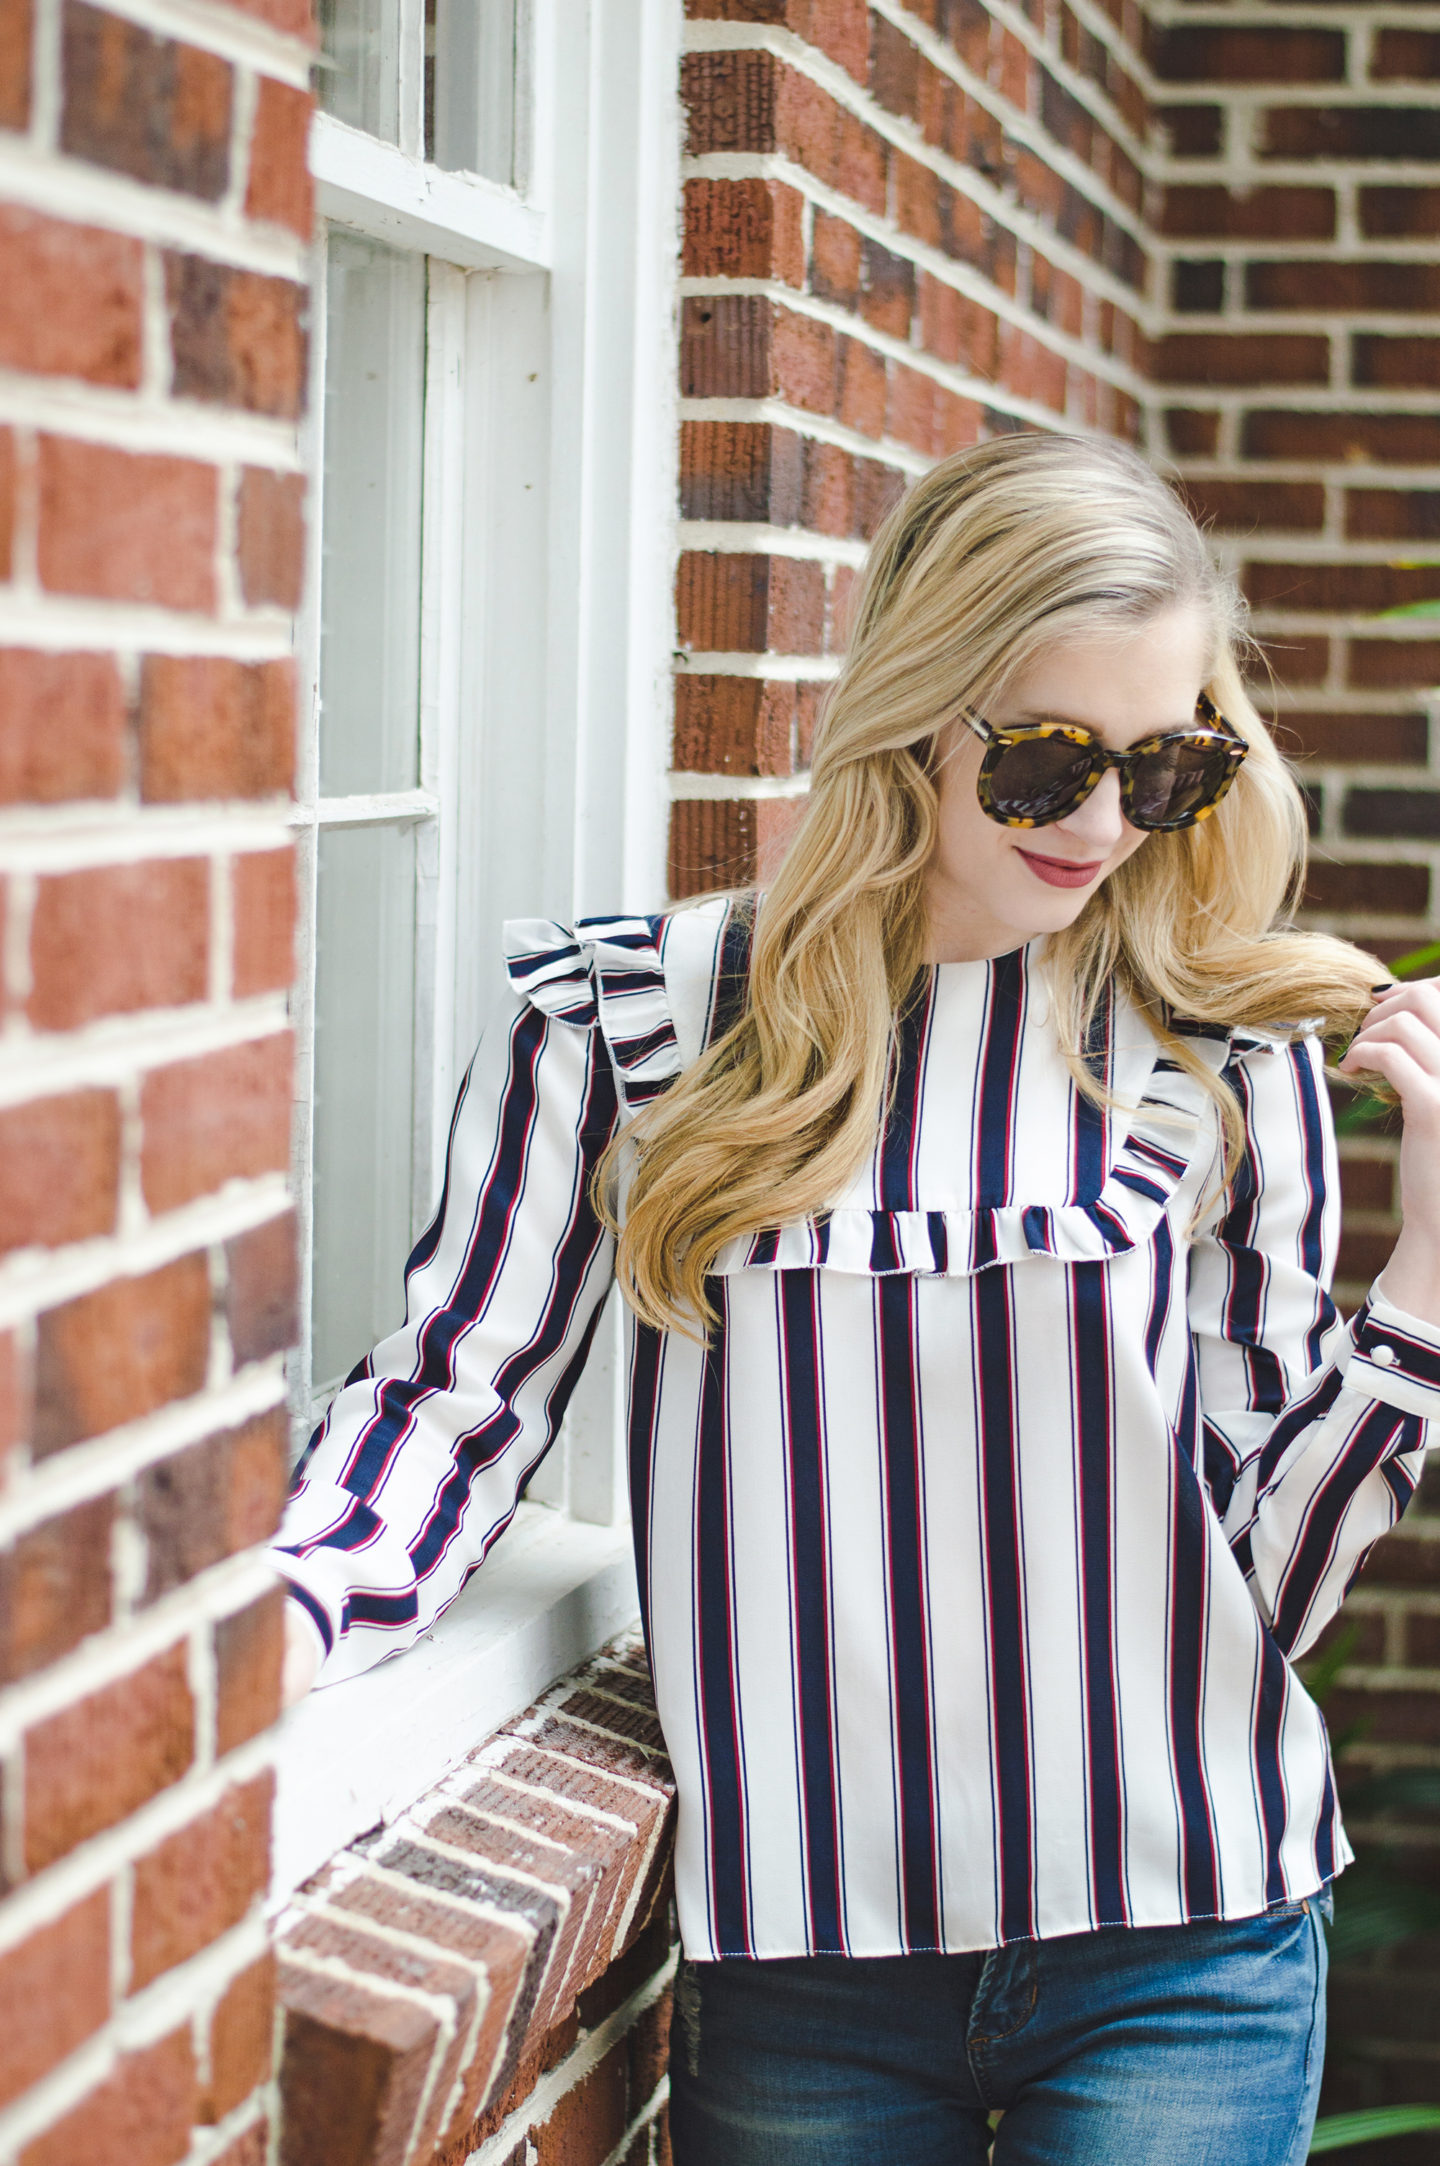 Bringing Back the 70's with Stripes and Ruffles